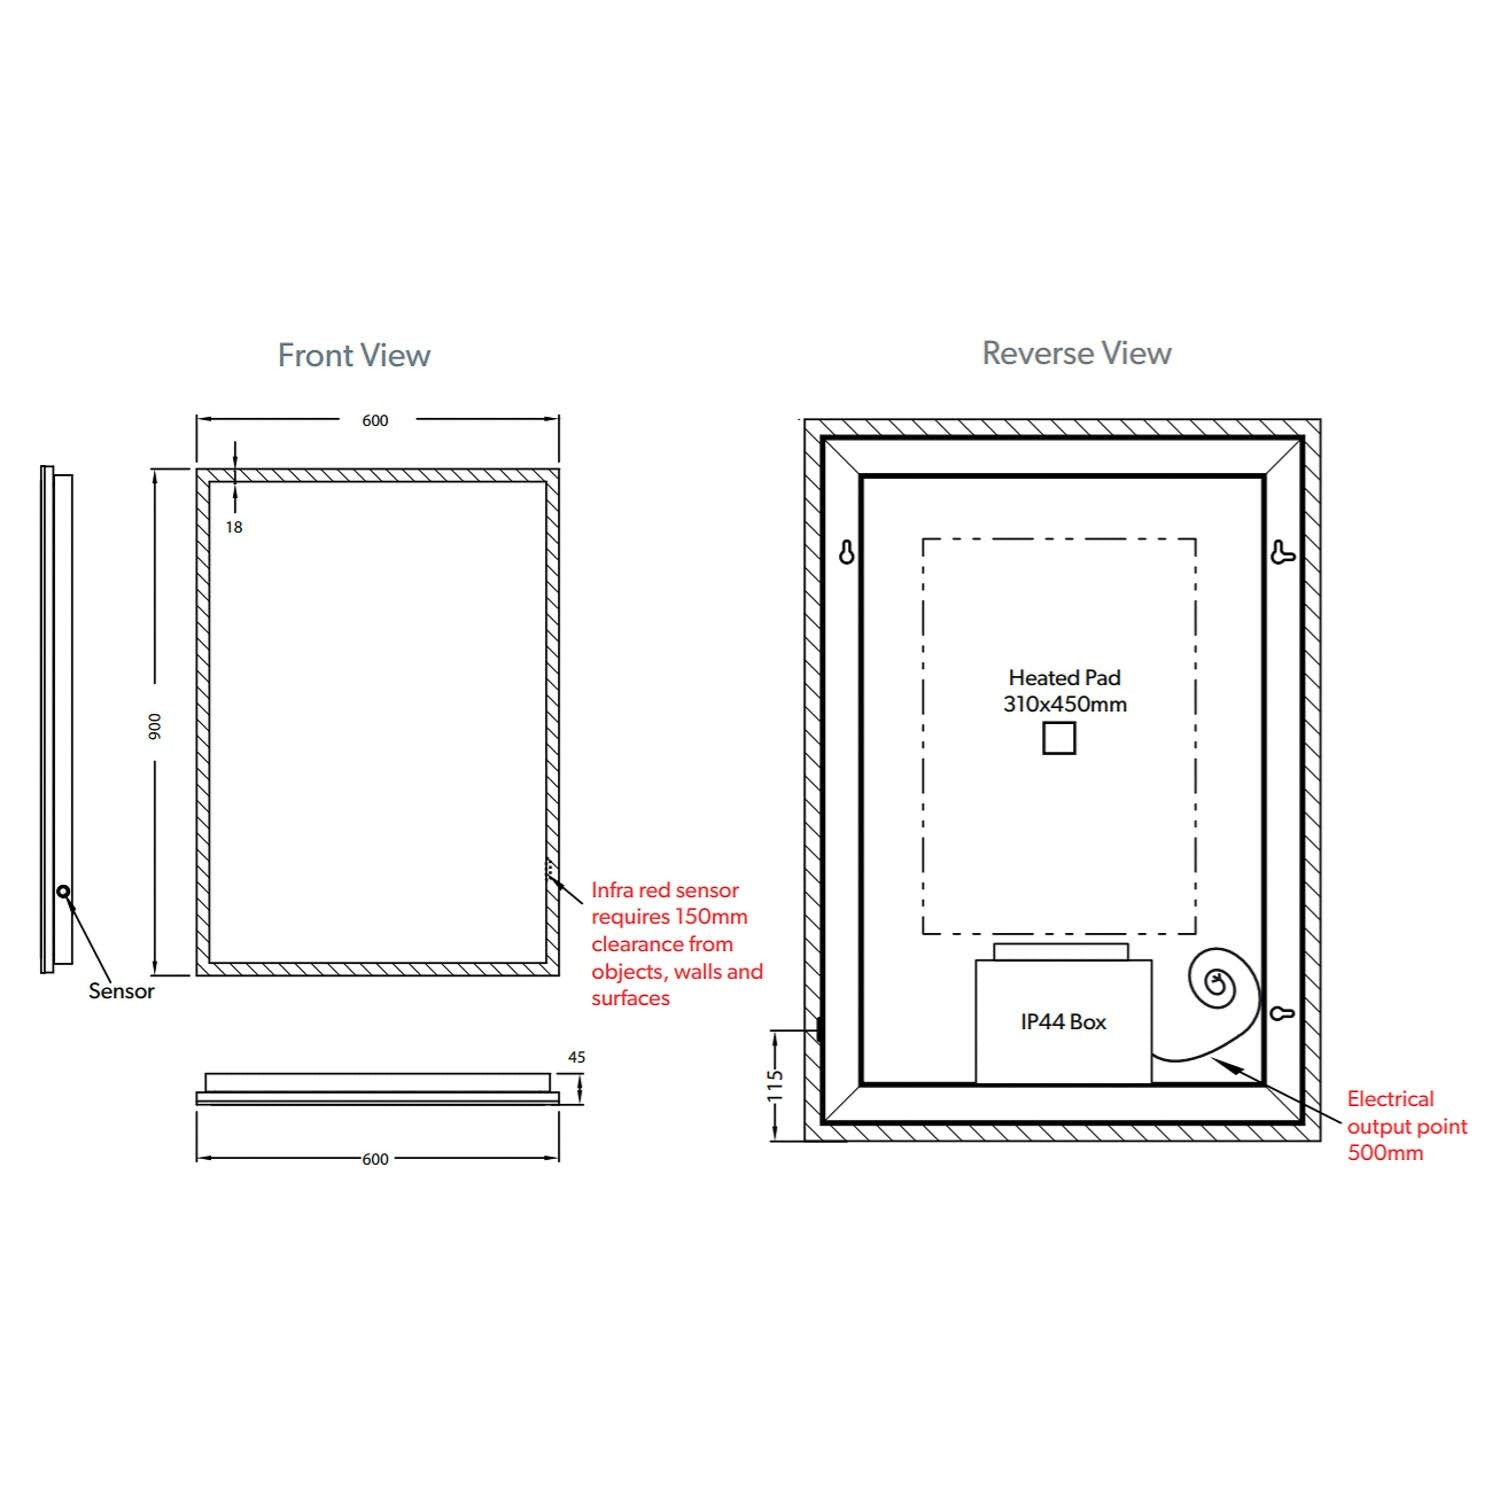 900x600mm Front Lit LED Light Mirror dimensional drawing